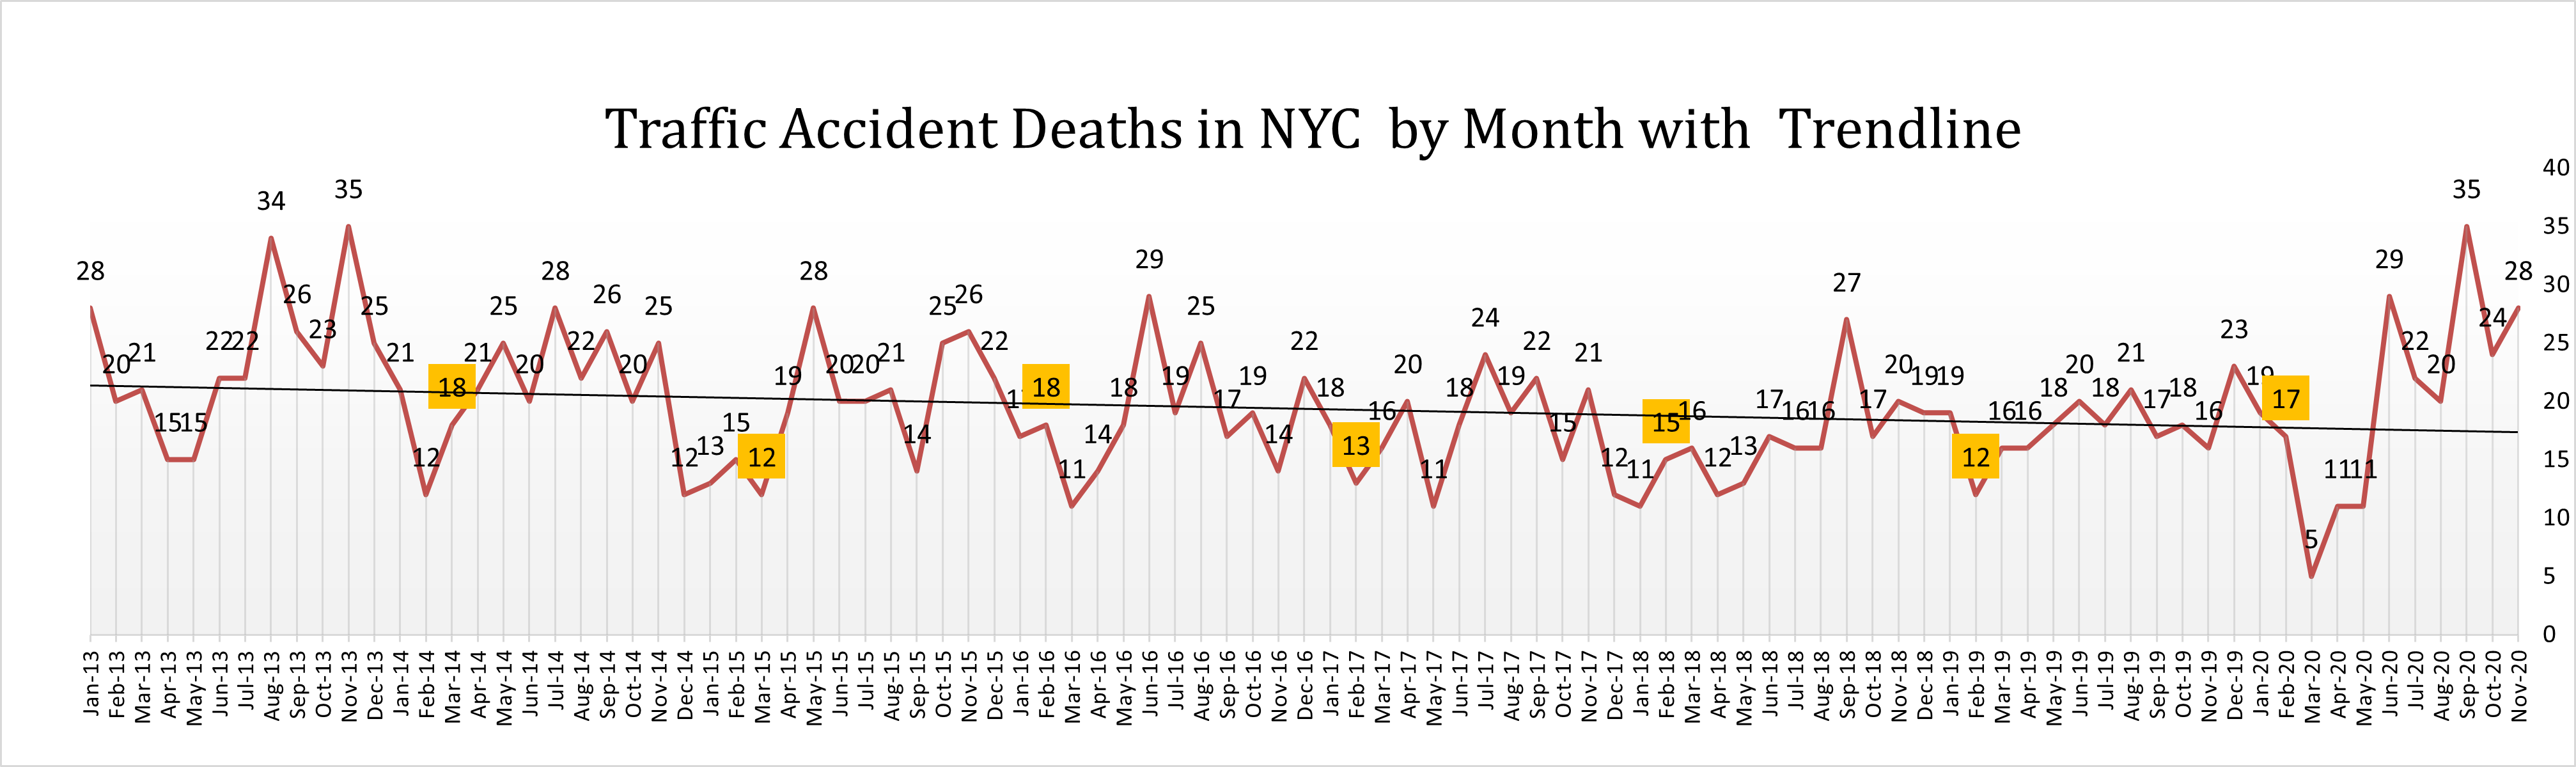 car accident death in NYC in November with trendline